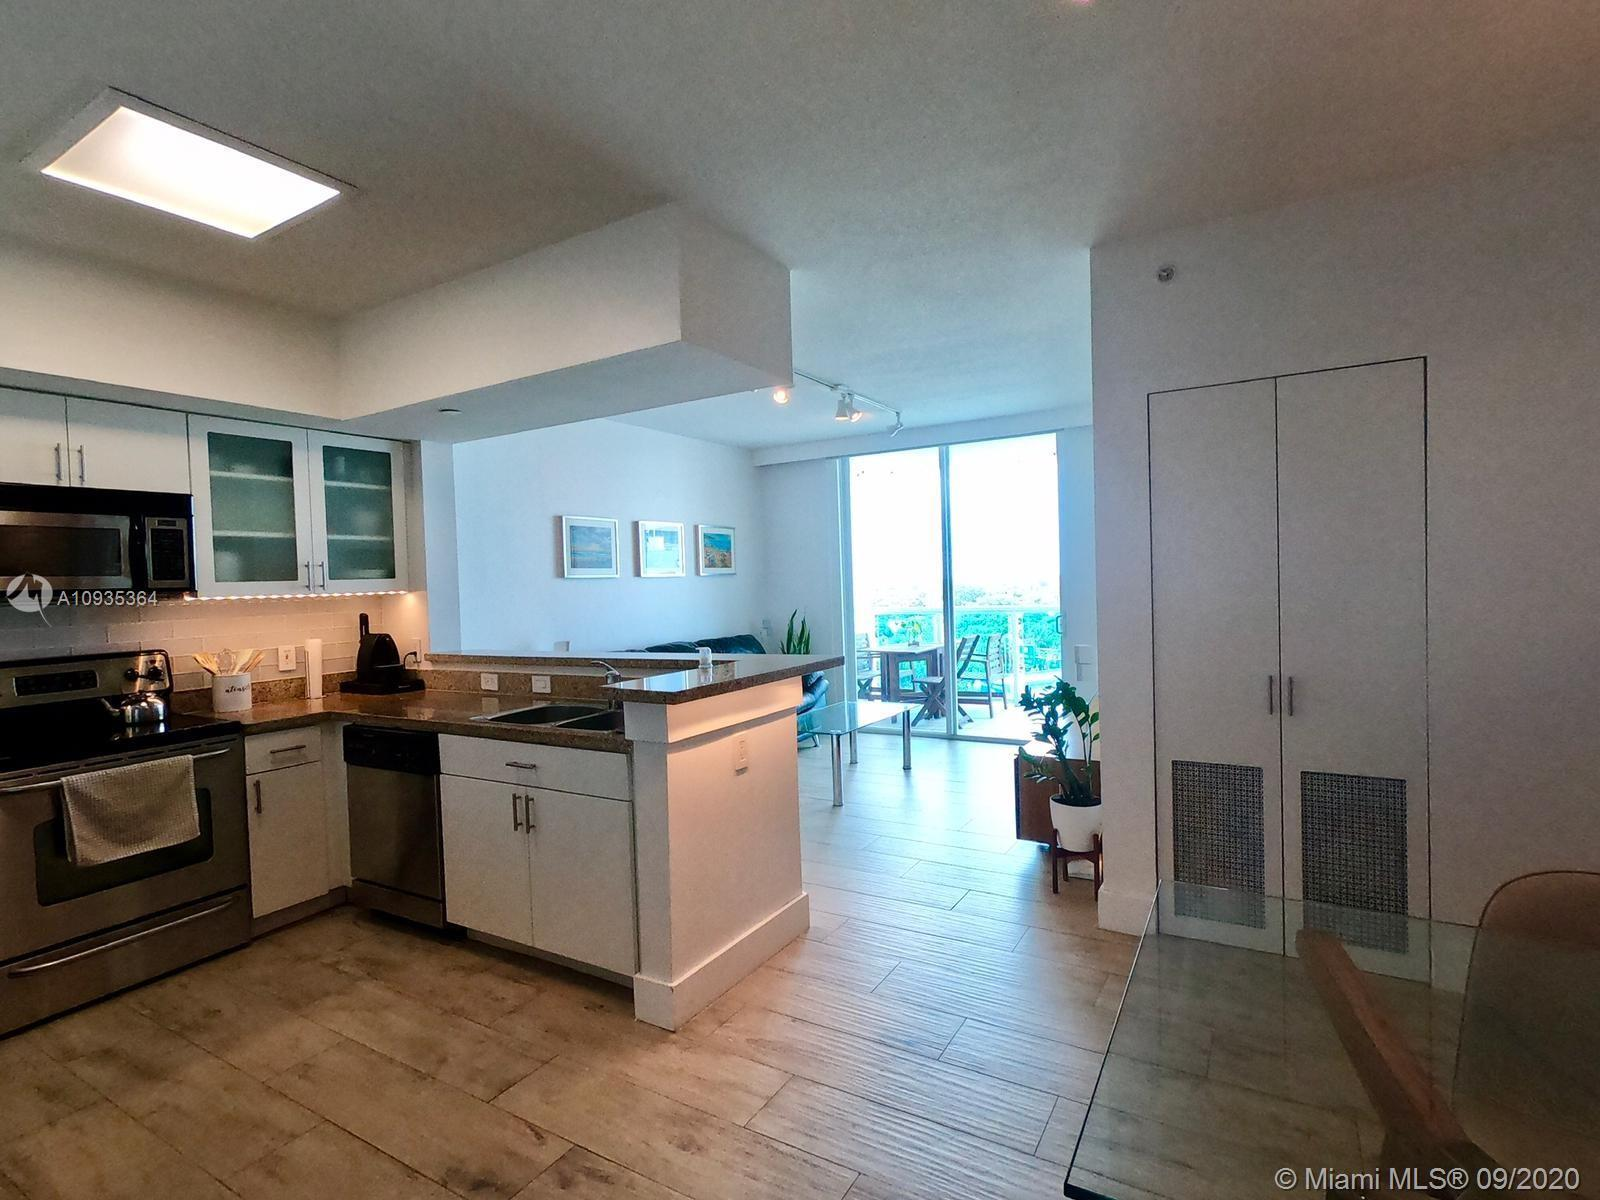 Spotless 2 bedroom, 2 bathroom apartment in a boutique style buiding on quiet cul-de-sac in Brickell